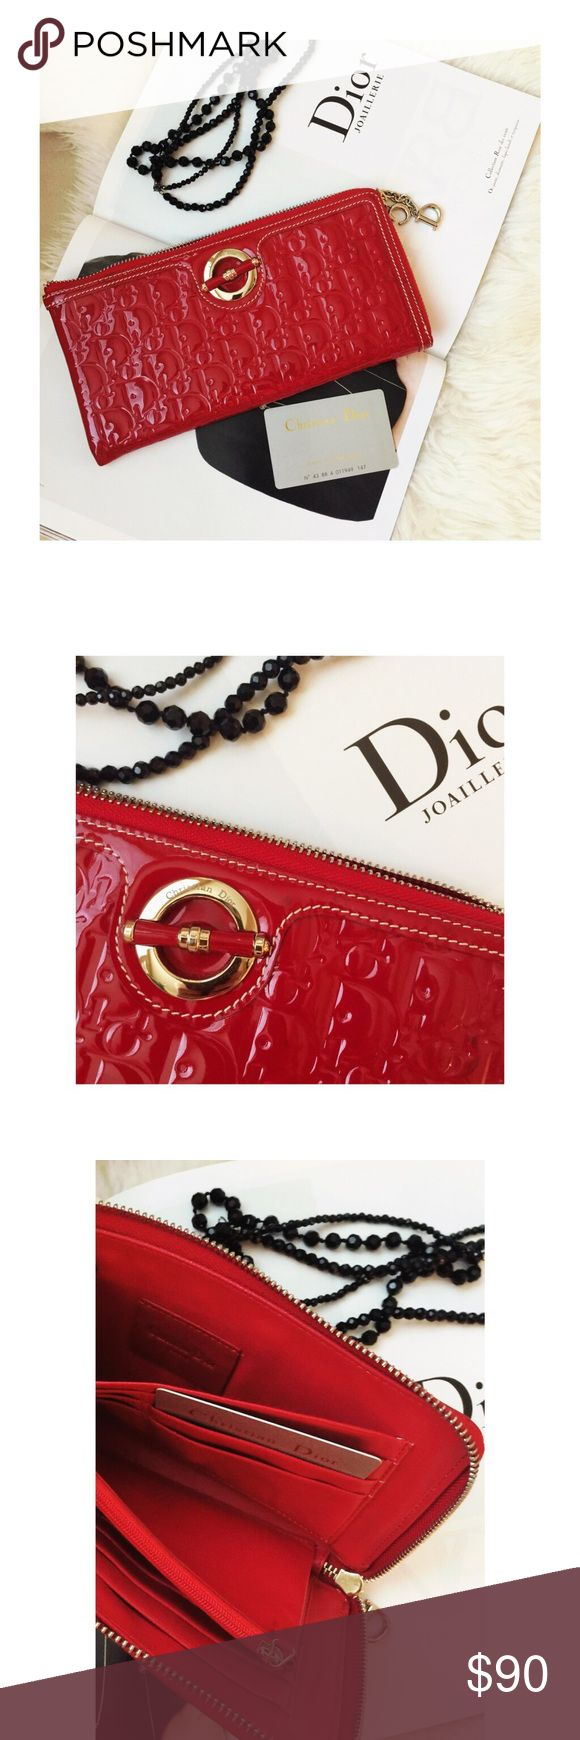 """Fashion Dior clutch . Used once ( like a new condition )Not sure about authenticity ,it was a gift from someone .Made of leather ( no box or dust bag ,no date code ,sorry ) .Total length 9 1/2 inches( long )  ,""""4 1/2 inch """"Wide """".Can send a video upon request.Thanks for looking! Fashion Bags Clutches & Wristlets"""